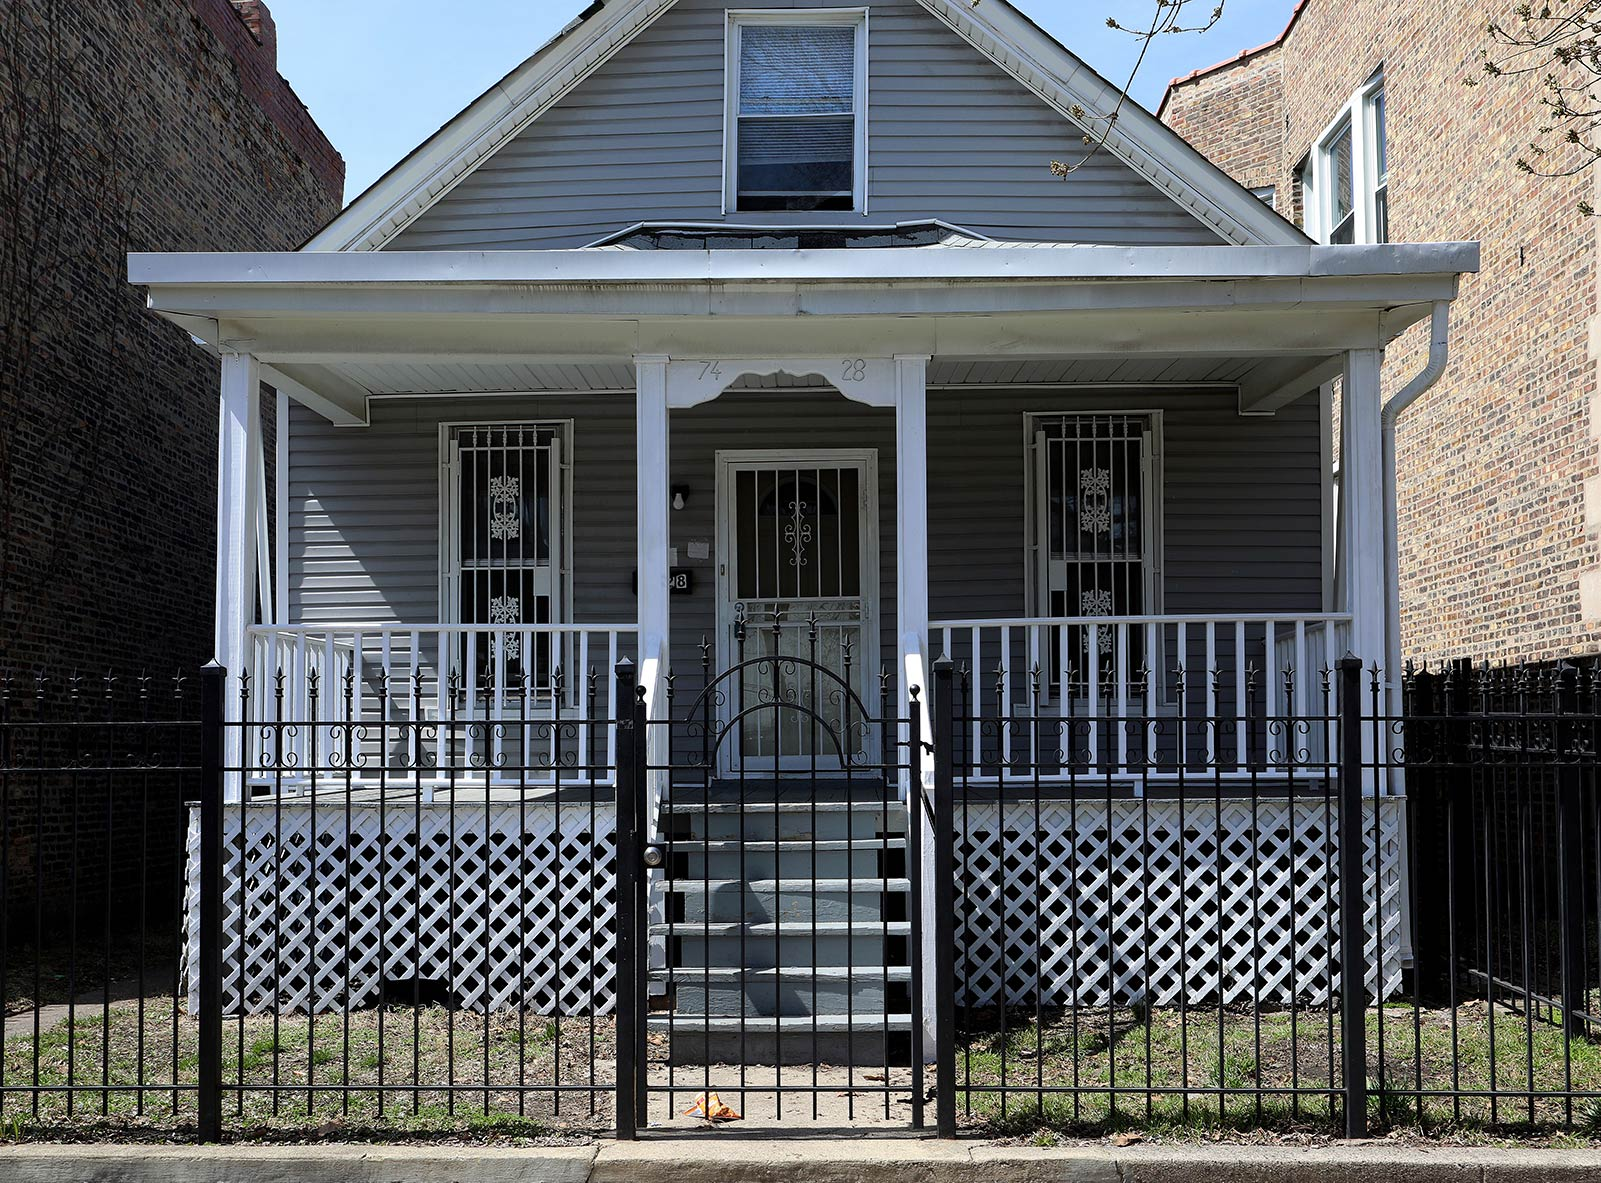 Gwendolyn Brooks Home in Chicago